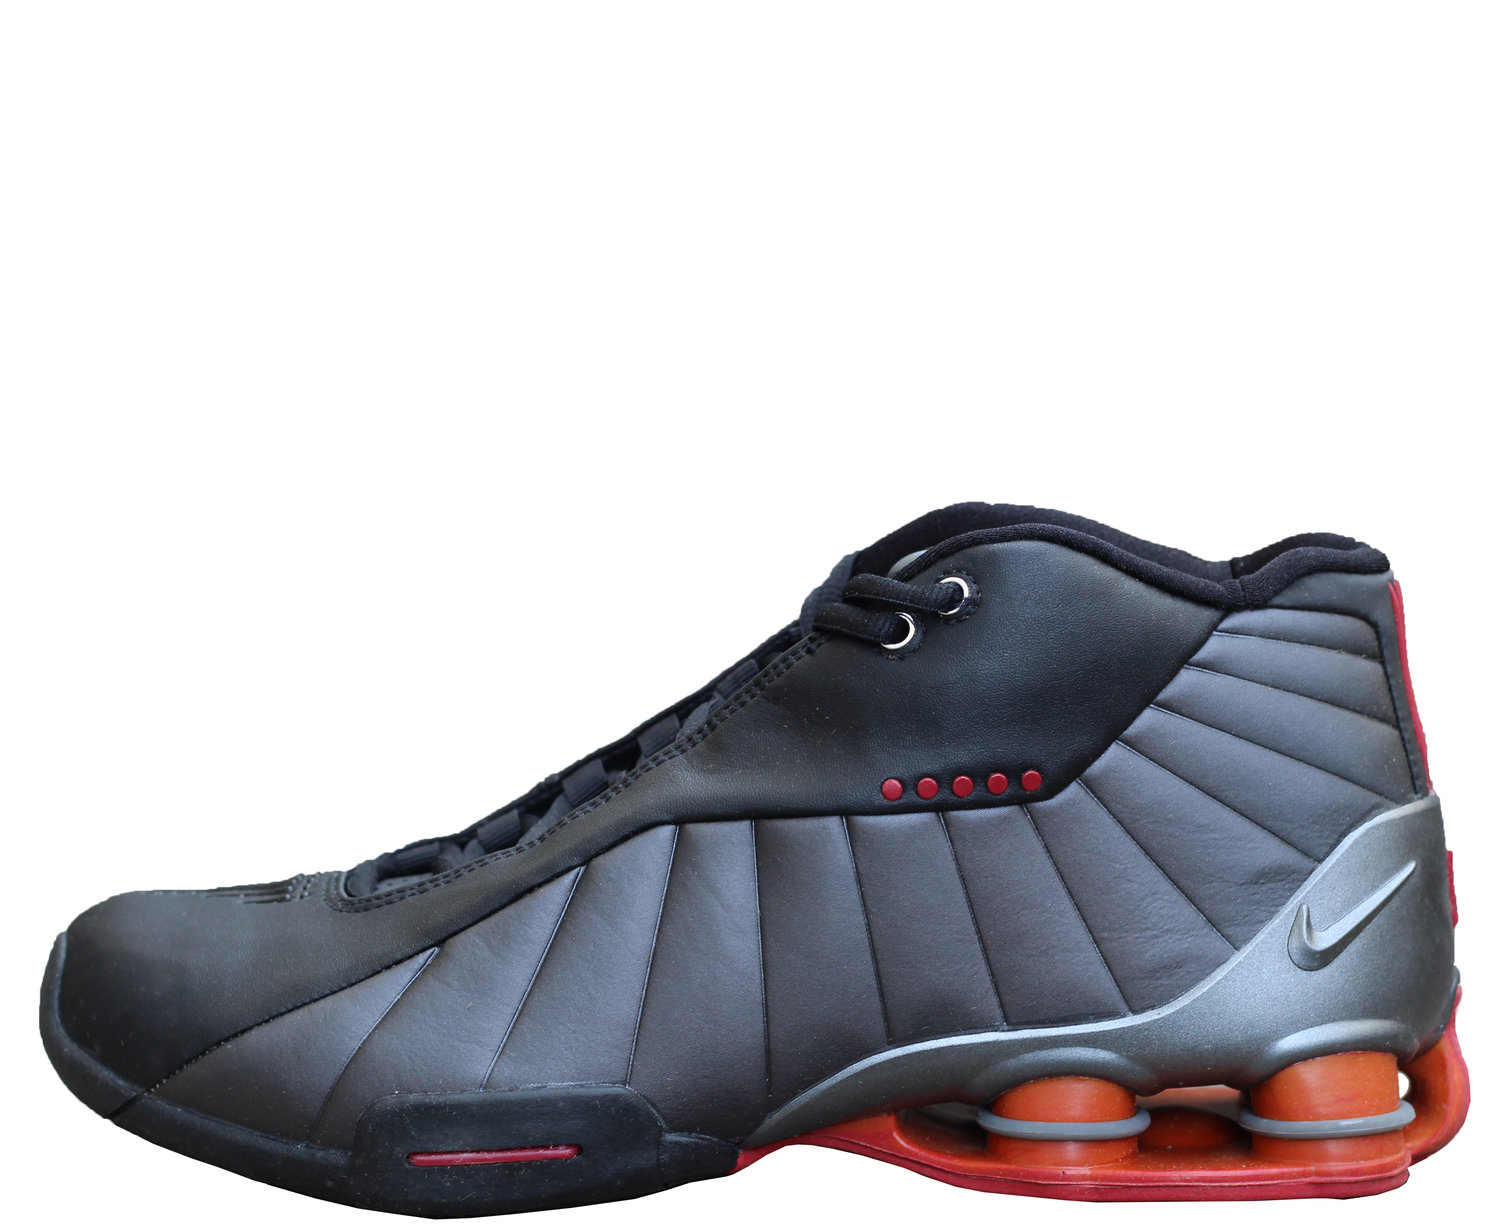 timeless design 682fc 4ab1d Nike Shox BB4 Black   Graphite   Red VC (Size 9.5) DS — Roots